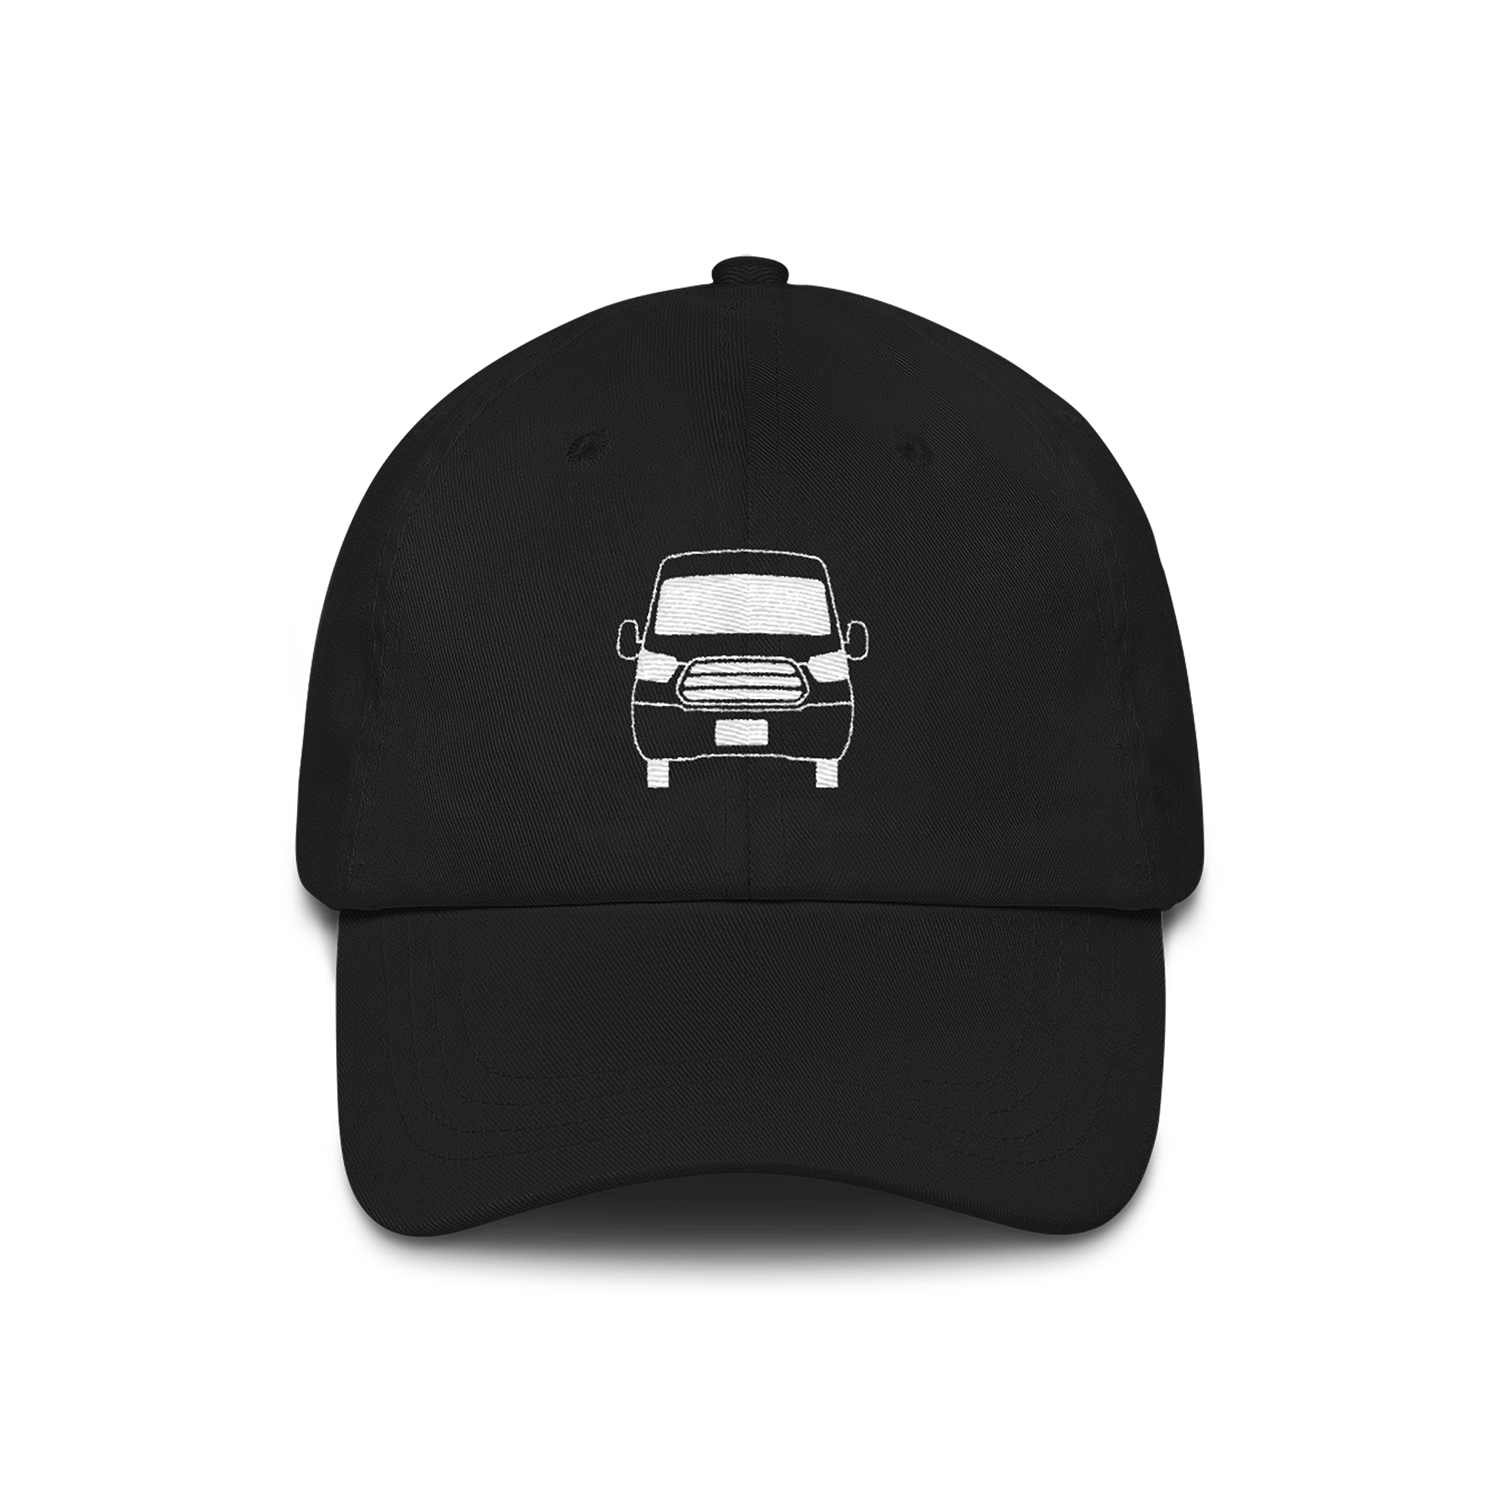 Next Wednesday Snapback Cap